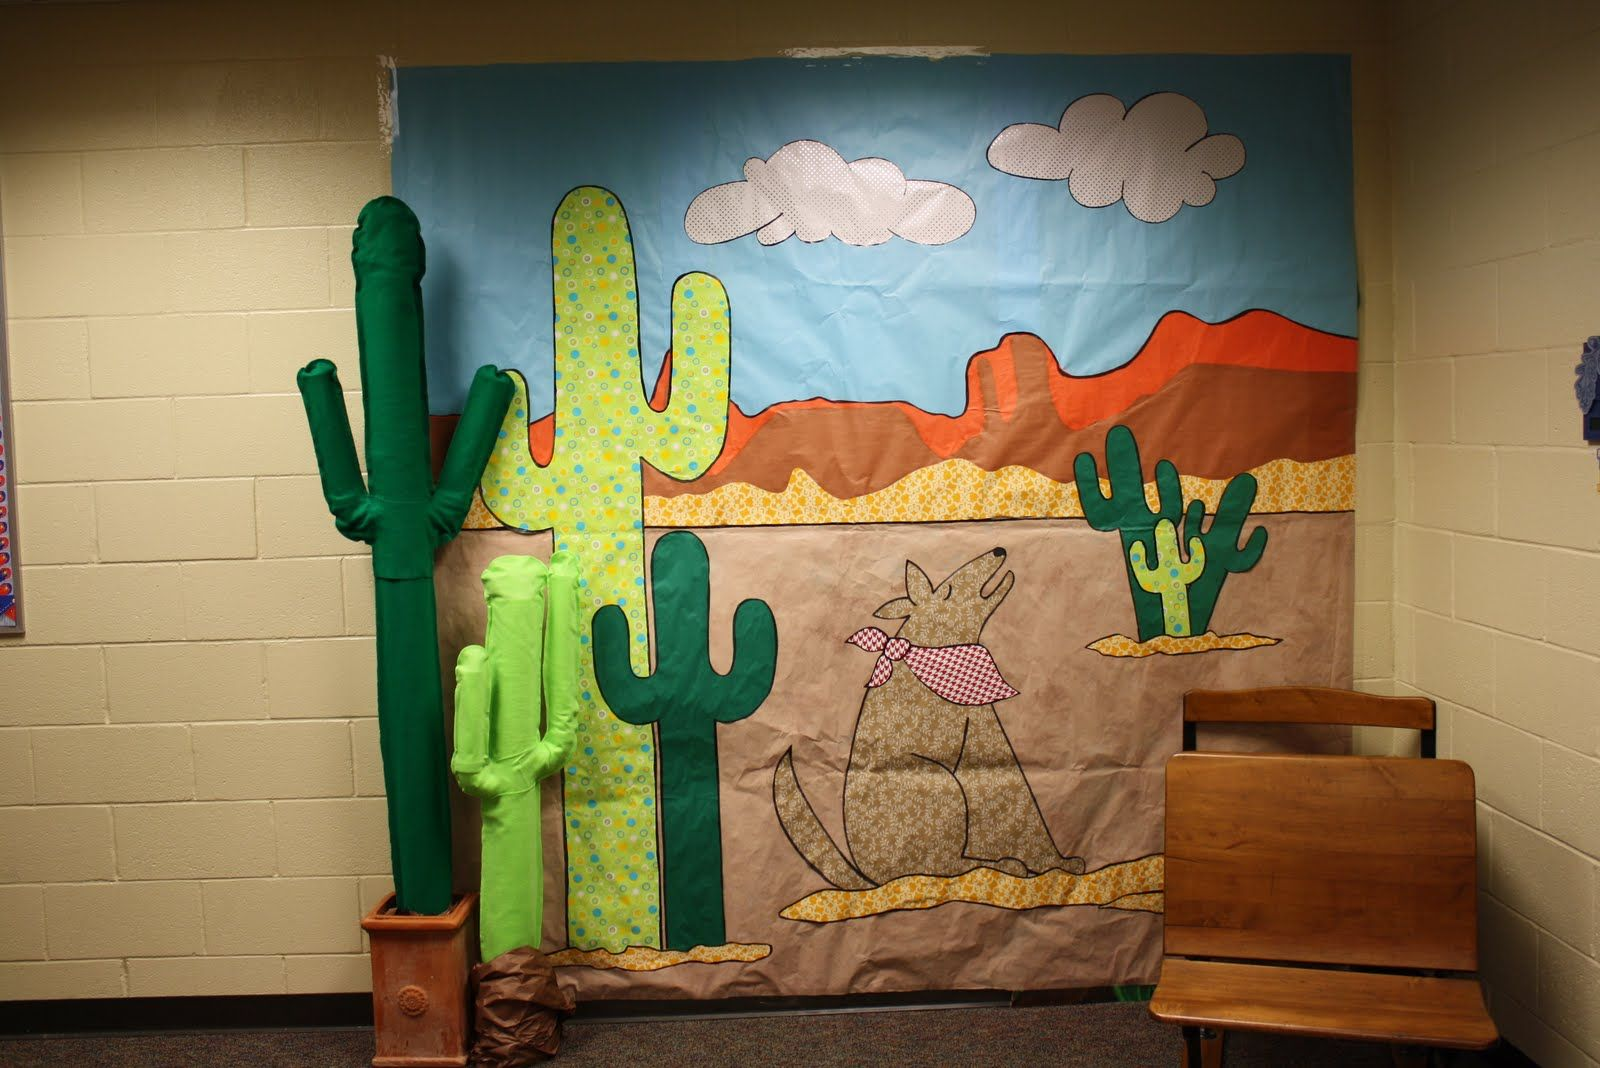 Classroom Decoration Cactus : The bets week ever too busy to post about last few